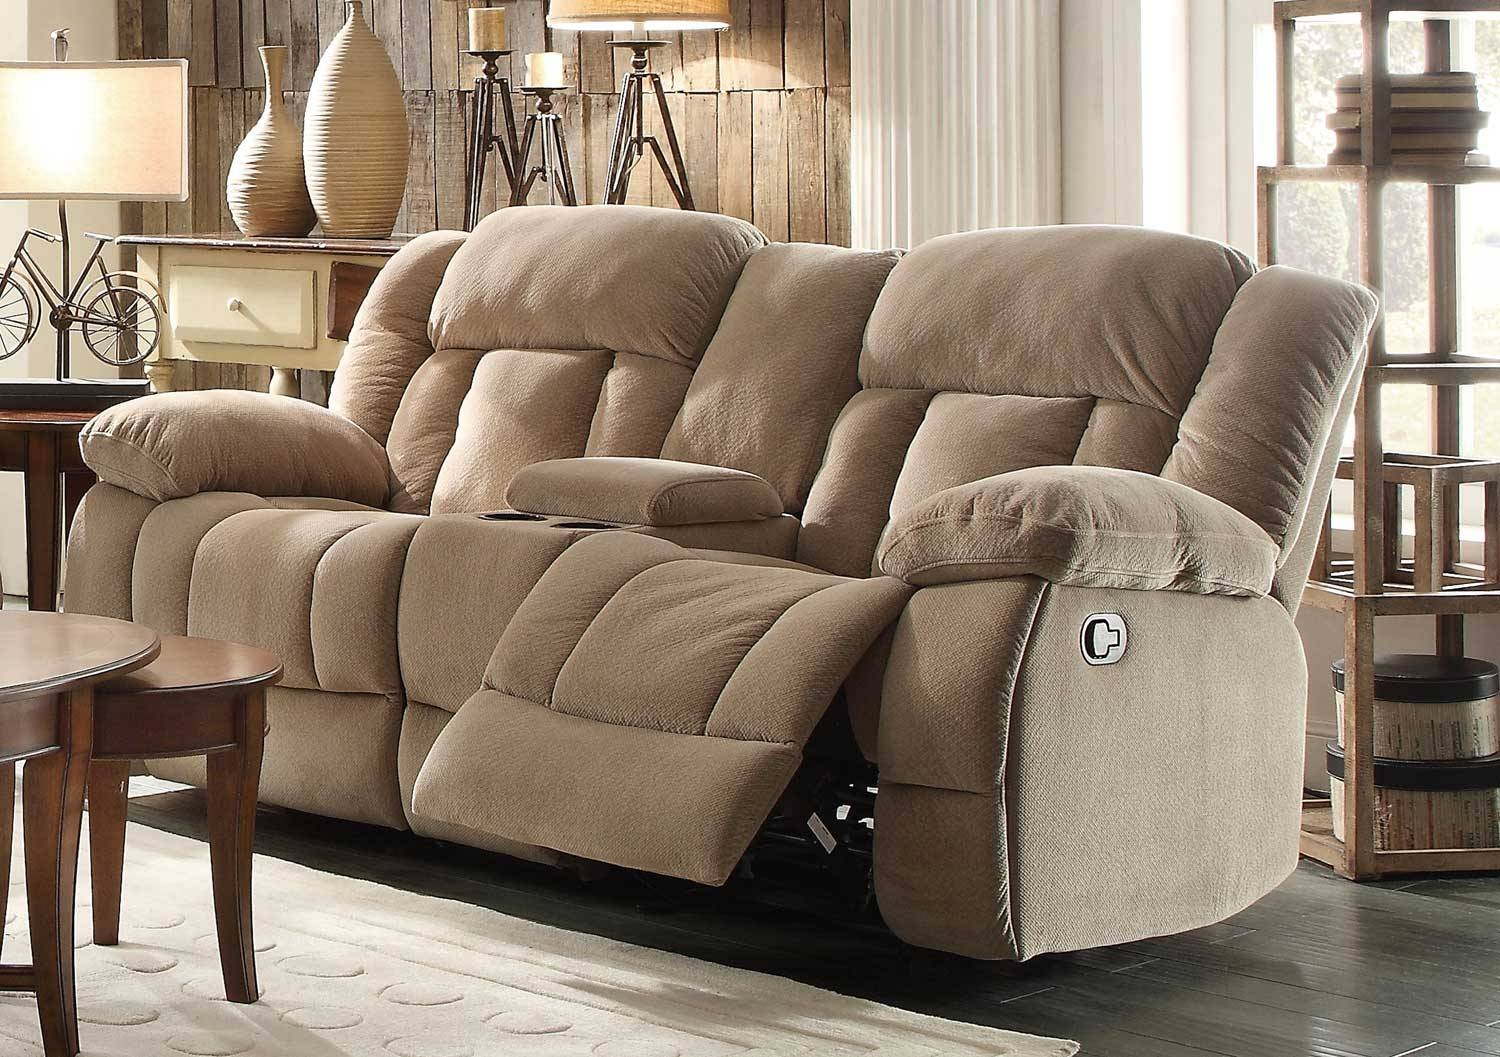 Sofas Center : Reclining Sofa With Console Tony Home Theatre for Sofas With Consoles (Image 22 of 30)